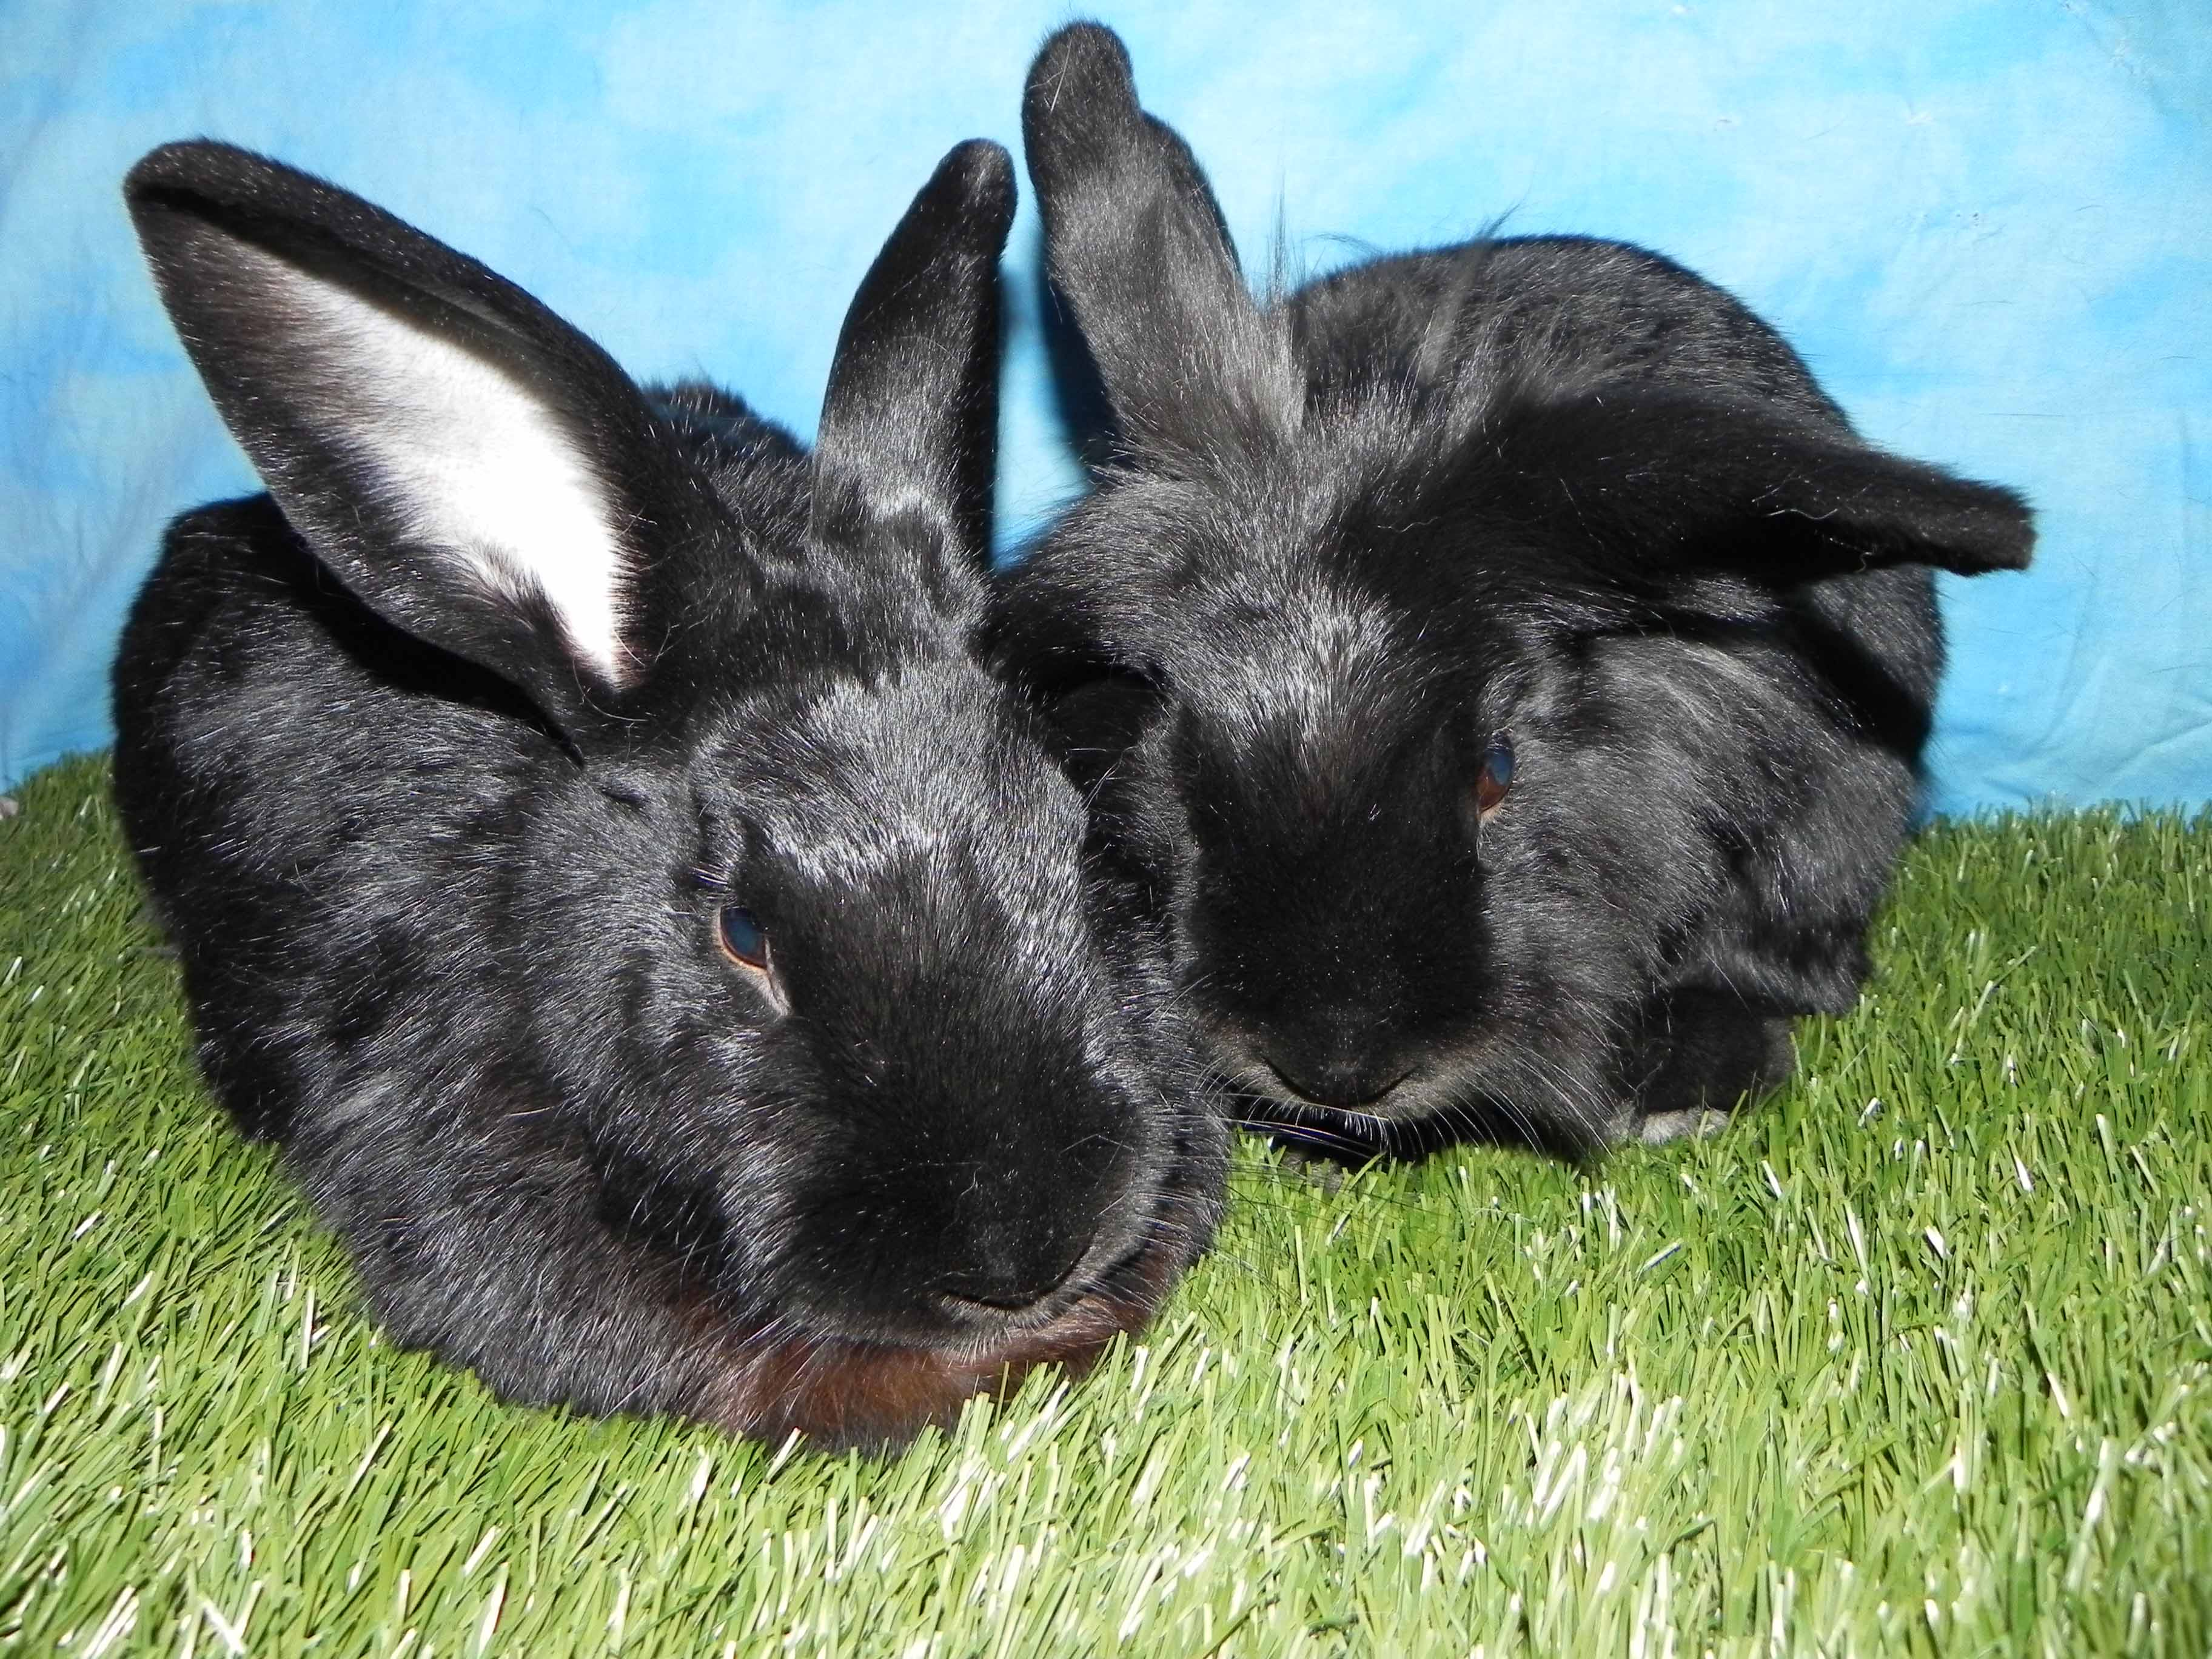 Elliot and Half-a-lop